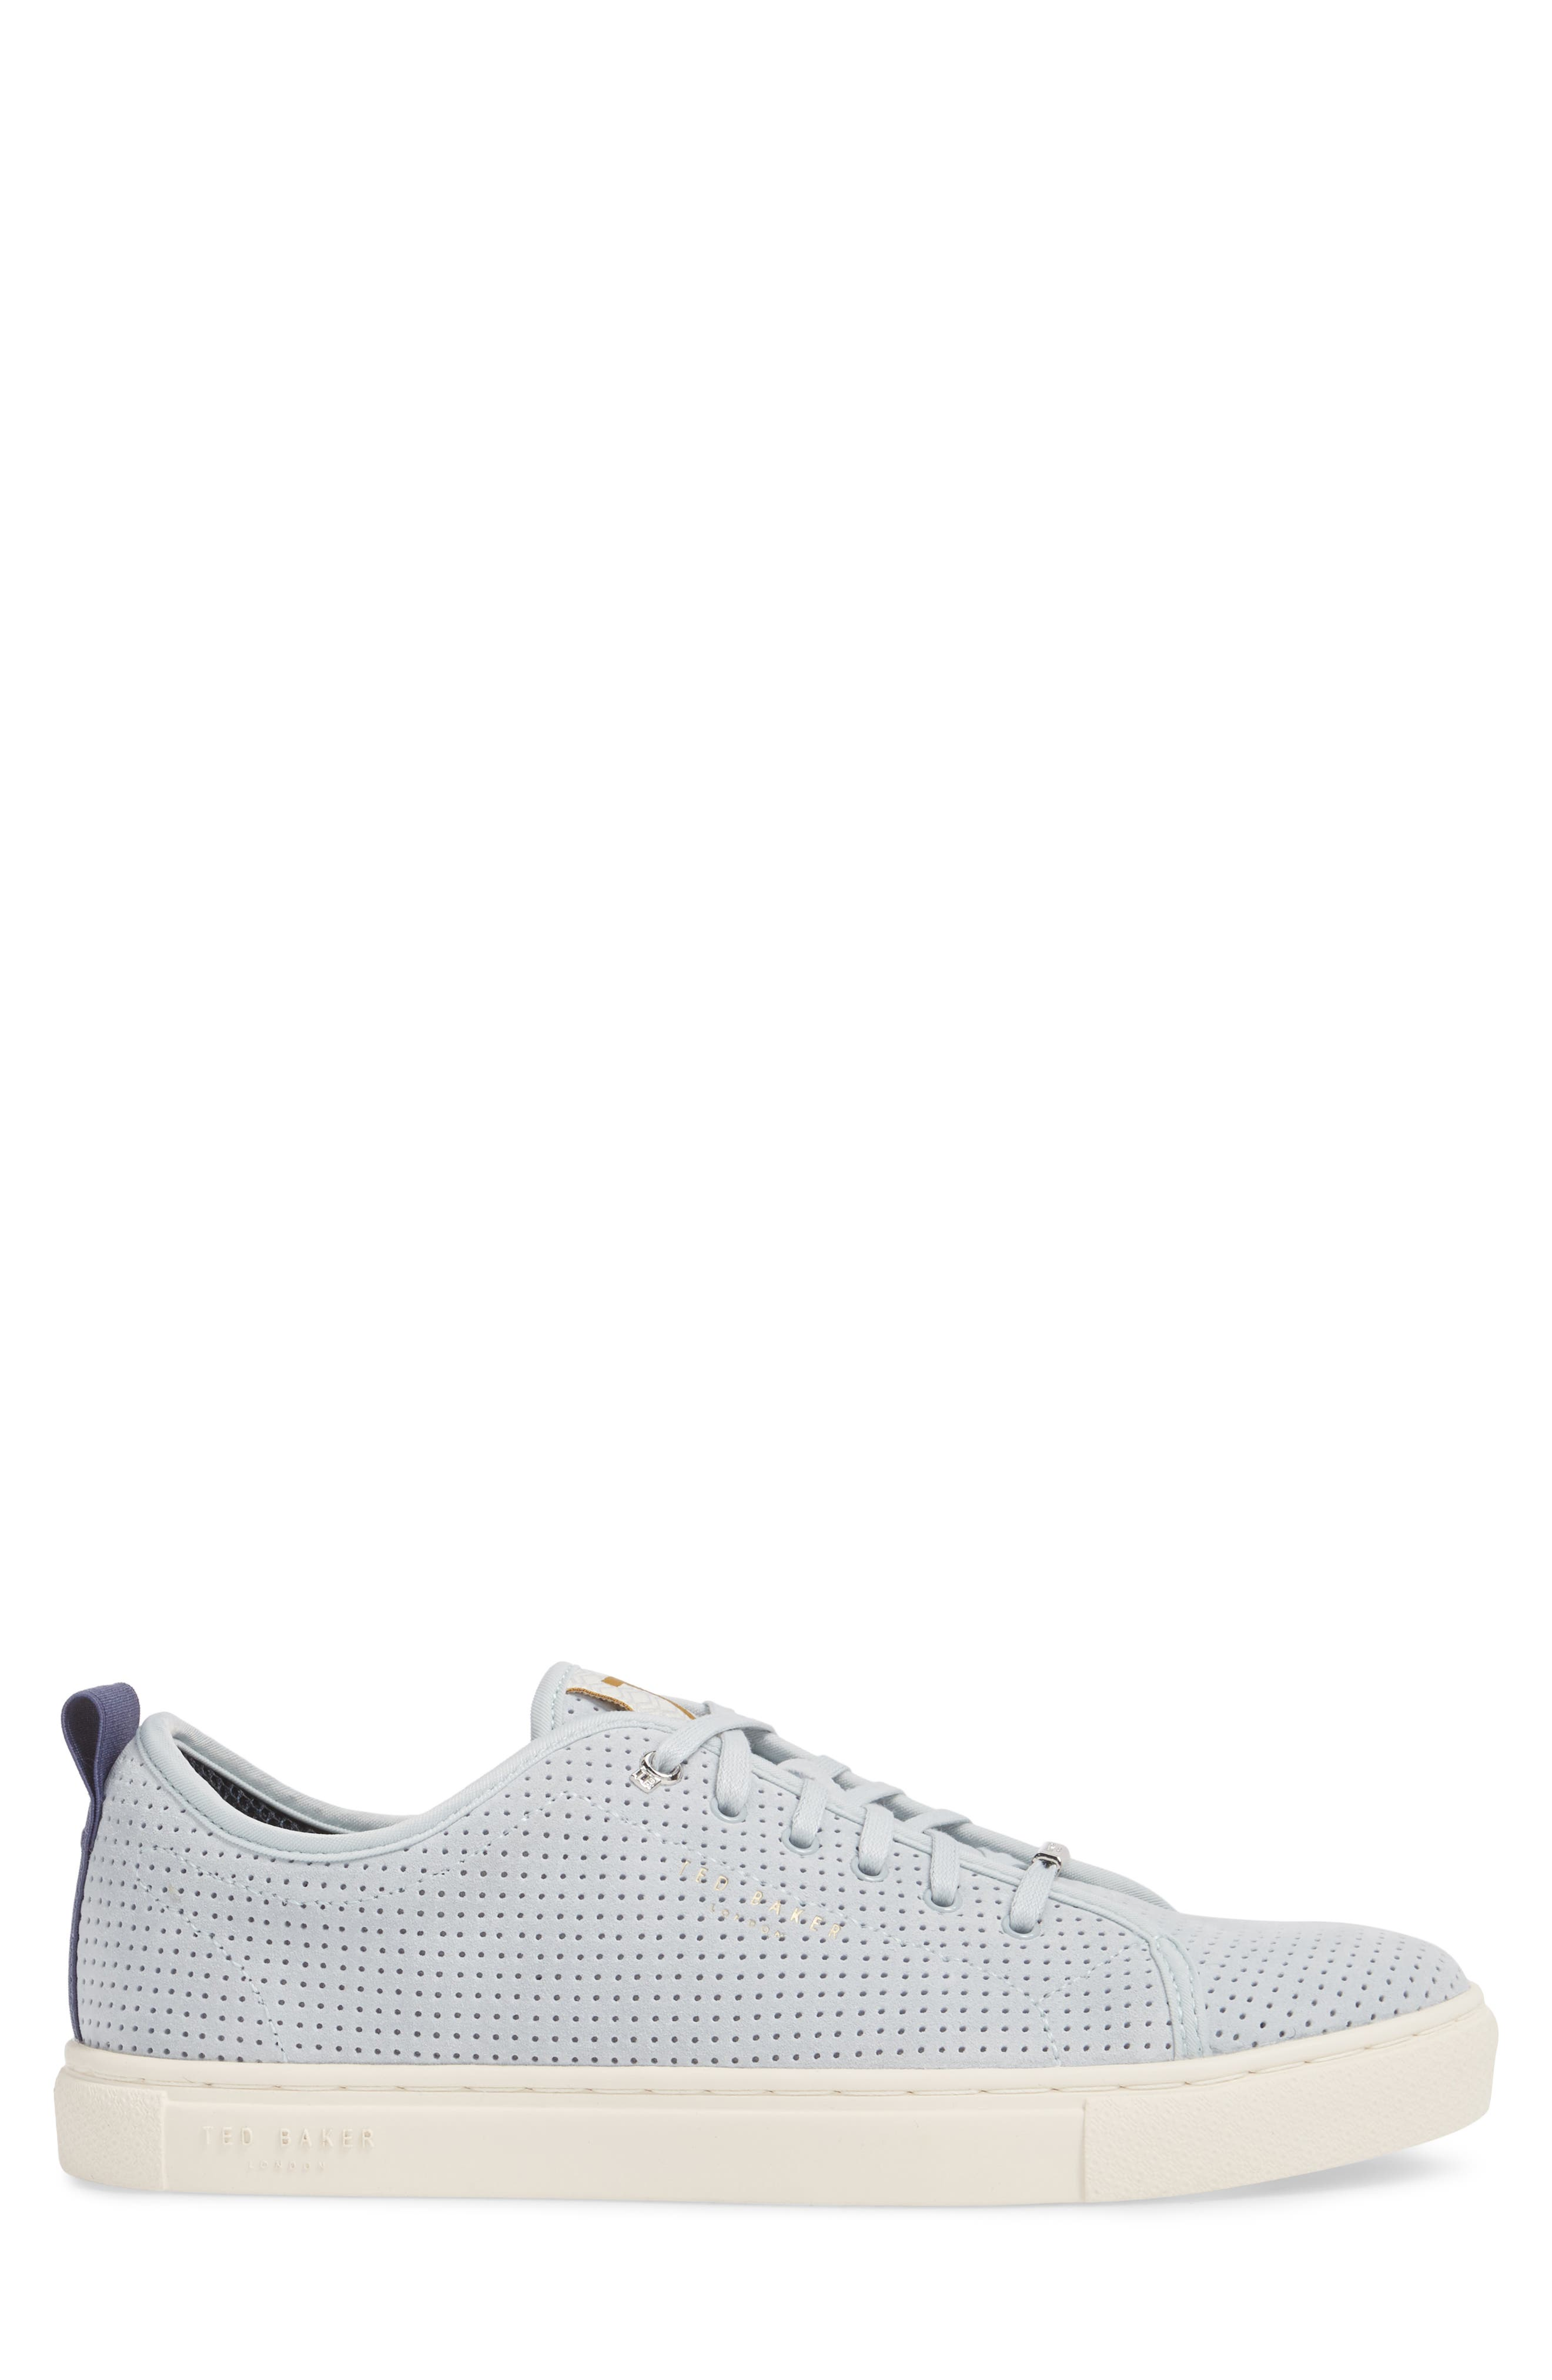 Kaliix Perforated Low Top Sneaker,                             Alternate thumbnail 3, color,                             LIGHT BLUE SUEDE